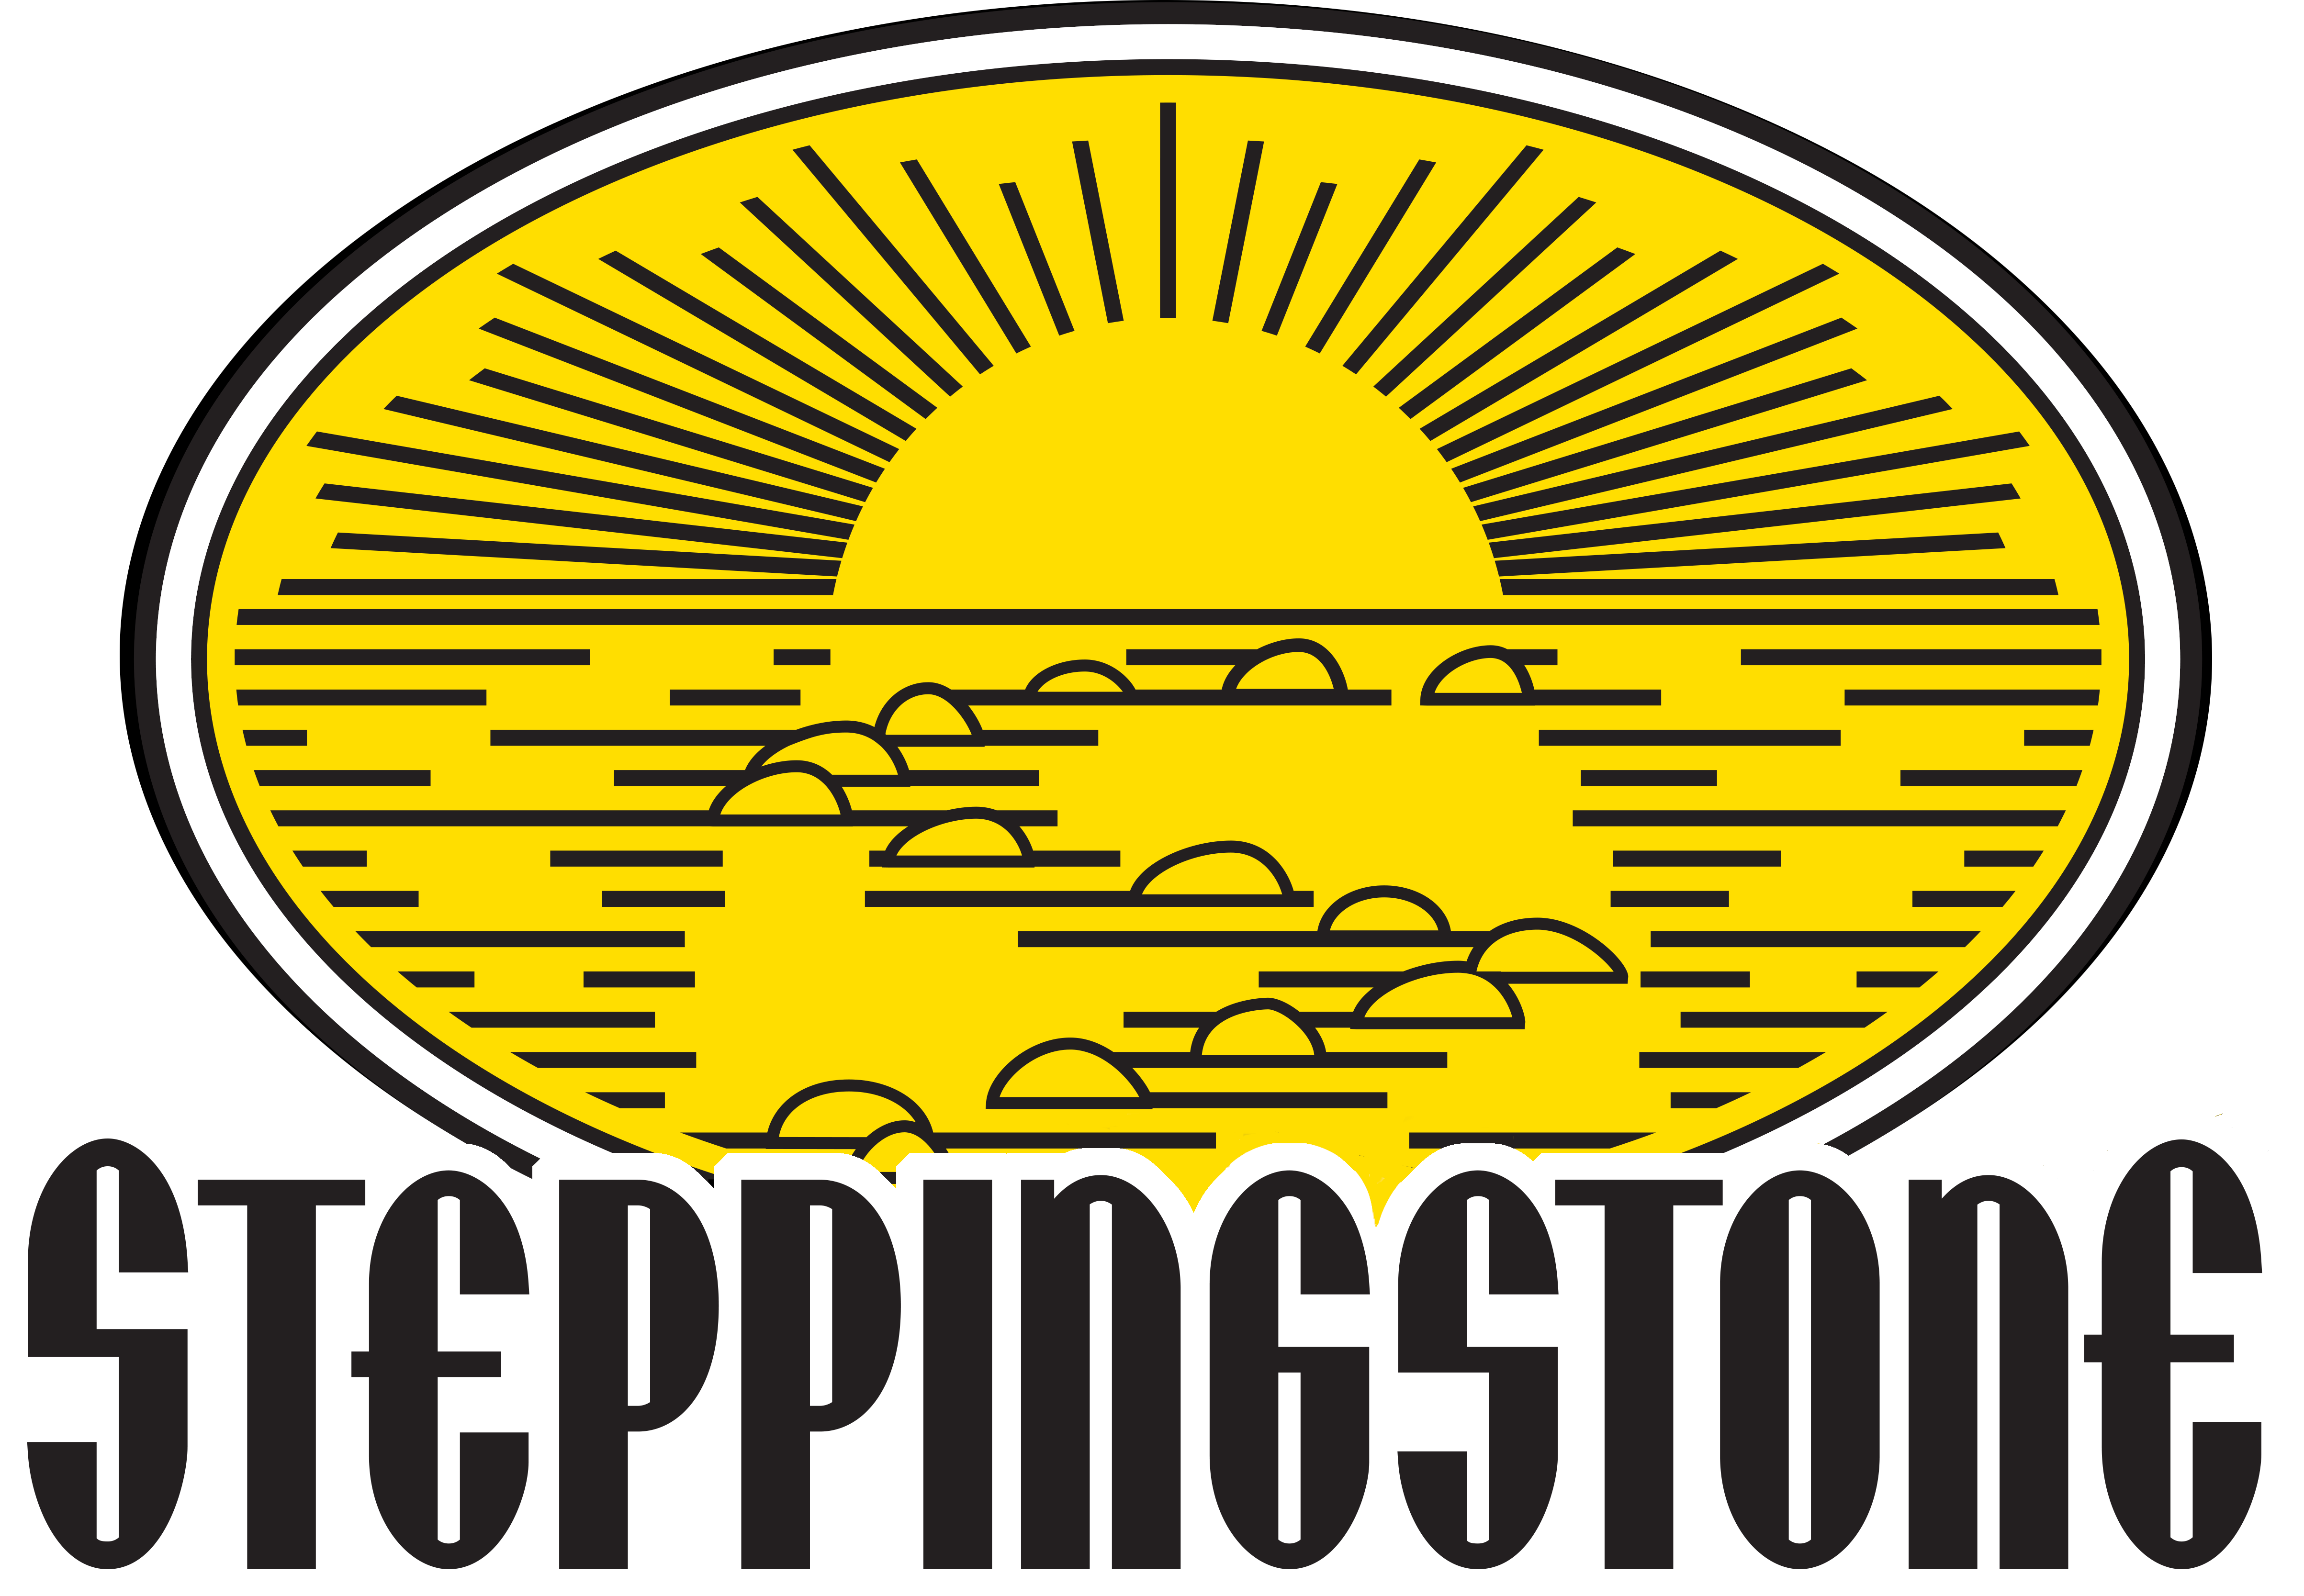 Steppingstone School For Gifted Education